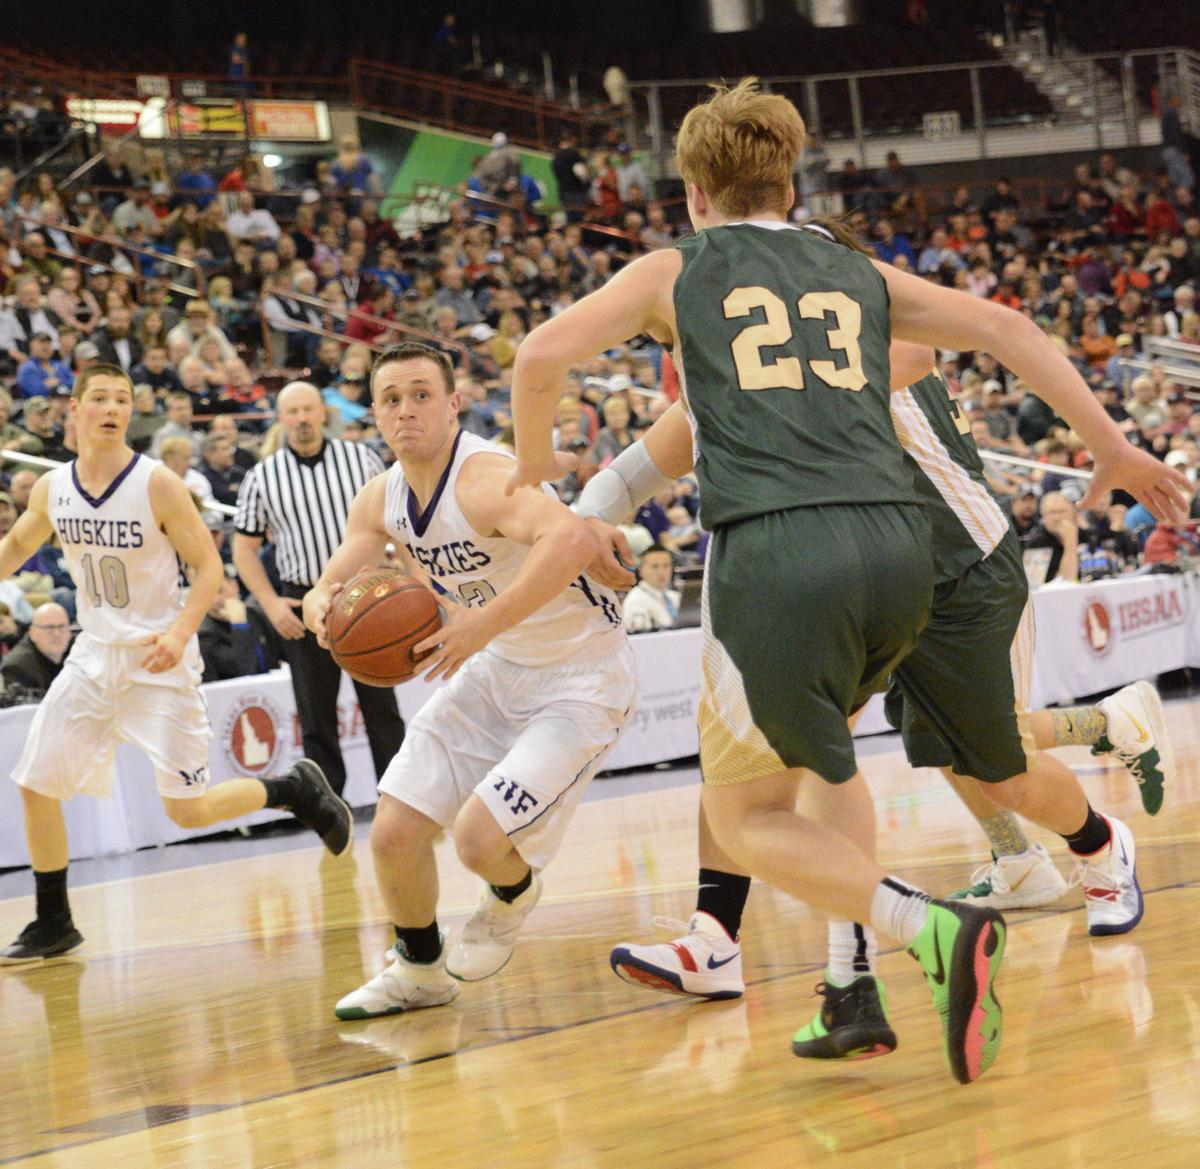 North Fremont's Paul Wynn drives to the basket in the 2A title game against St. Maries.